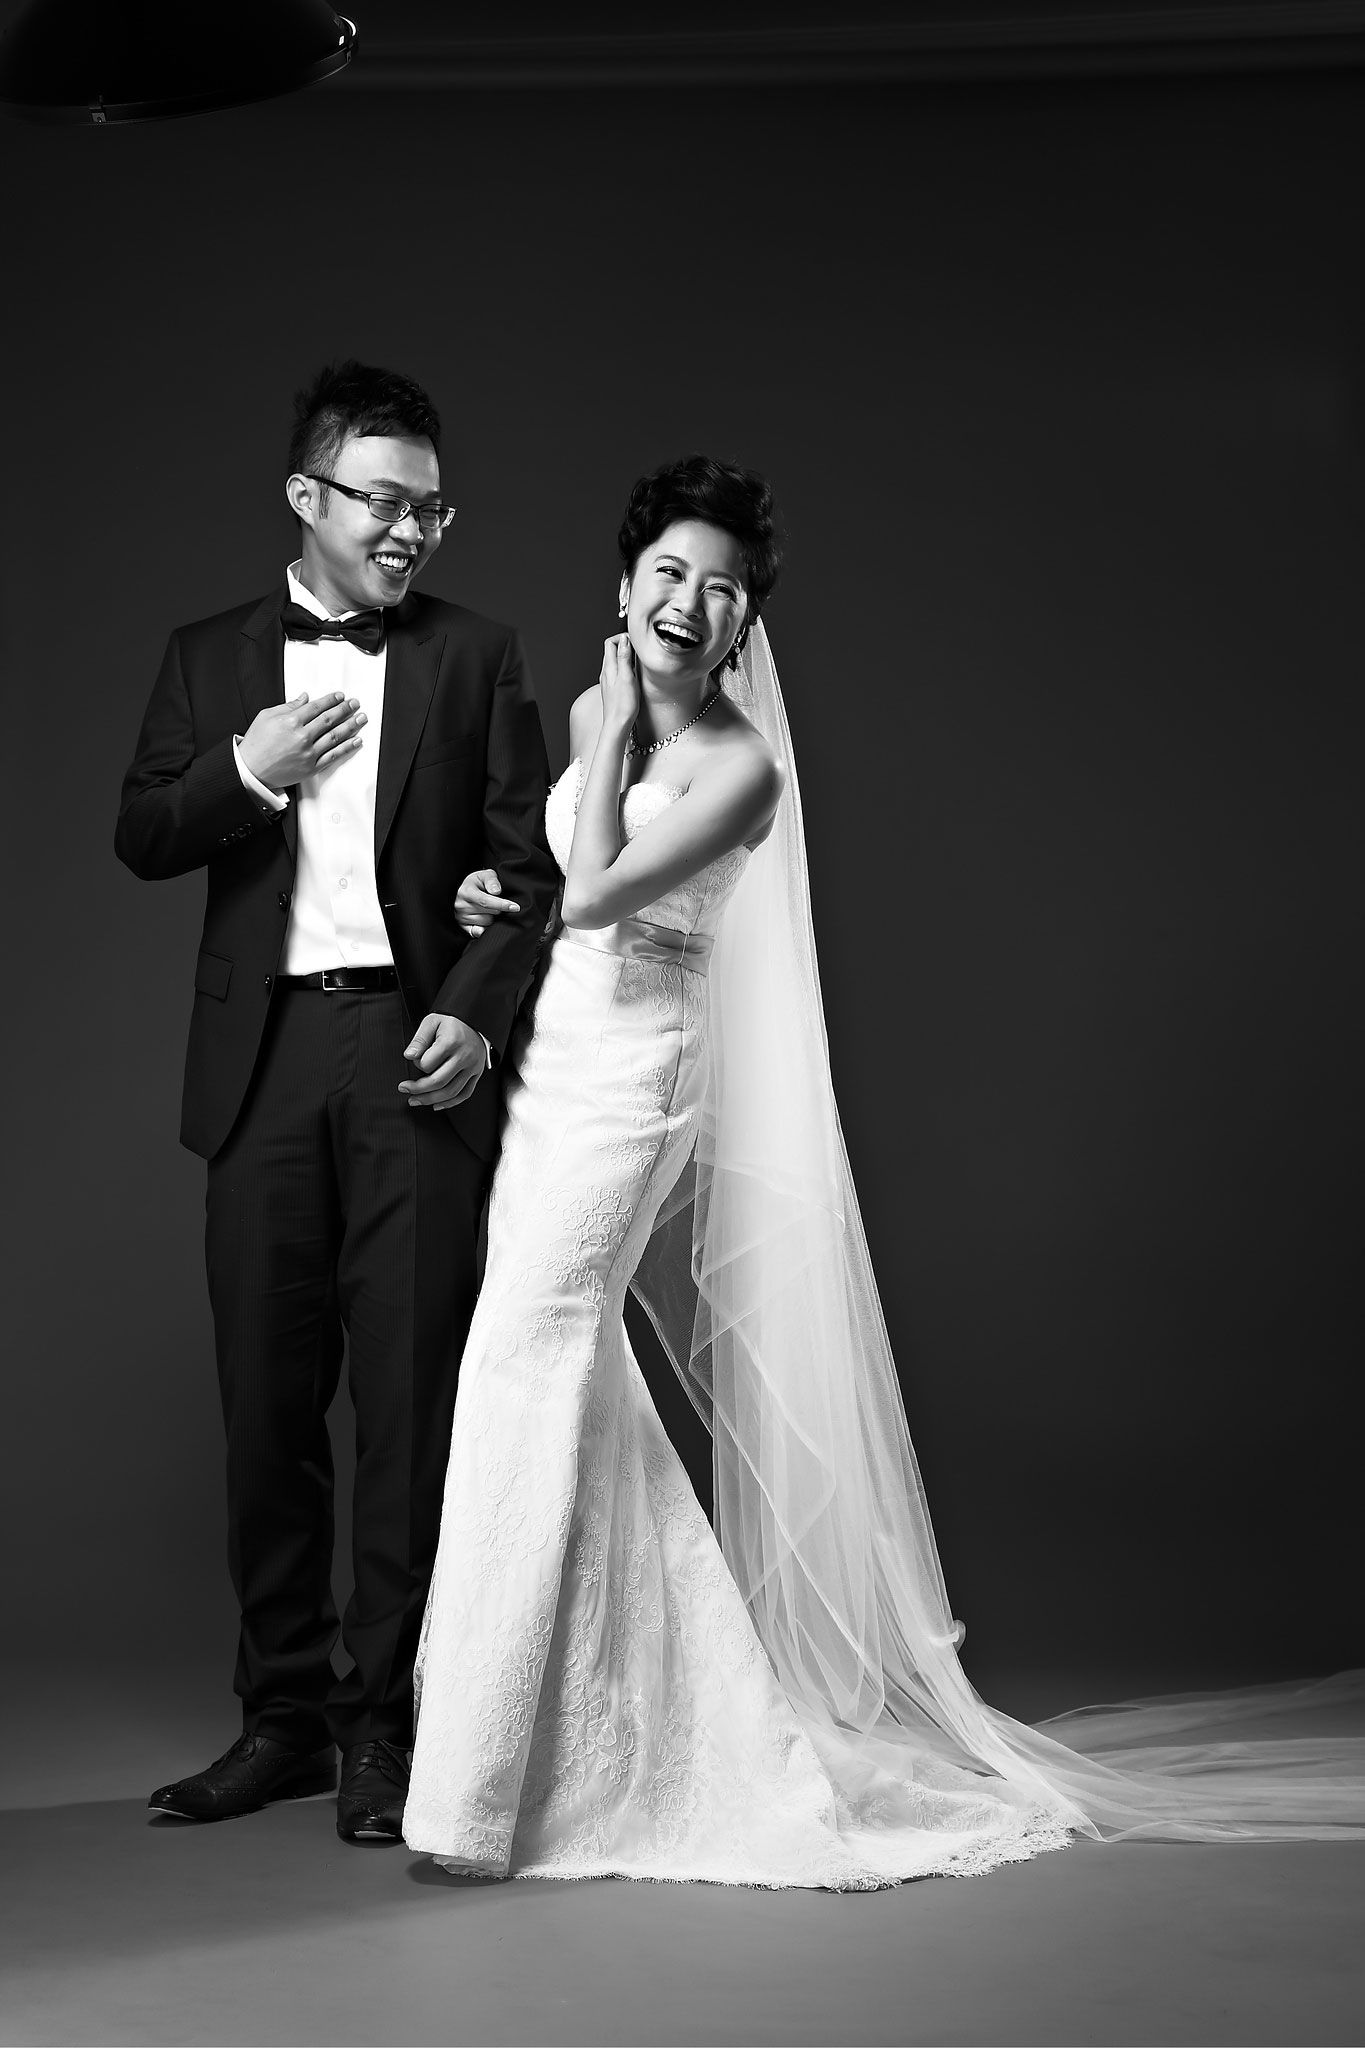 Another Great Studio Black And White Pre Wedding Photo Photoshoot